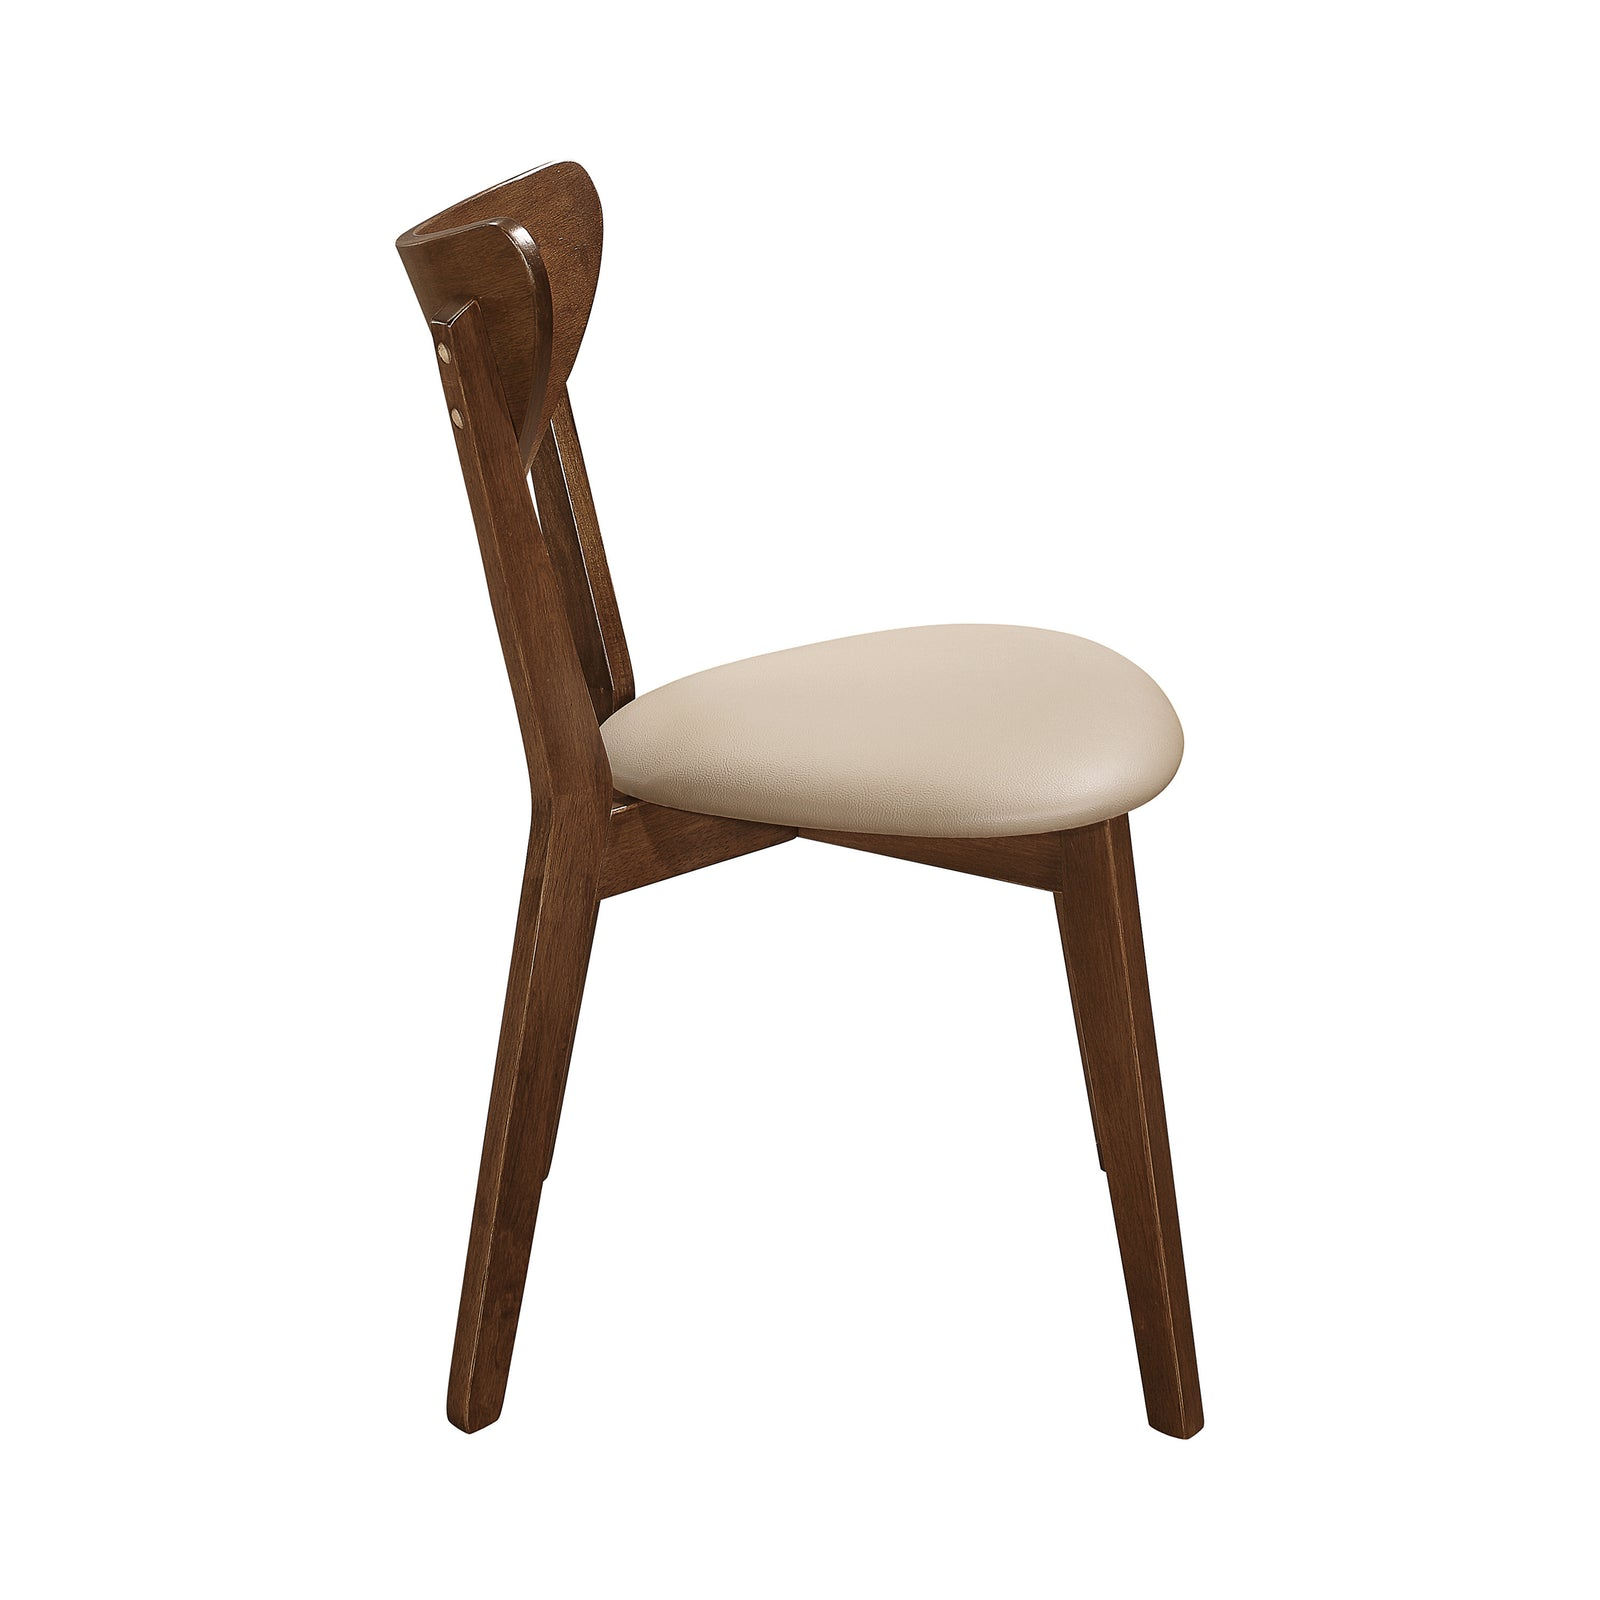 Coaster 103062 | Mid-Century Chestnut Dining Side Chairs With Curved Back Cushion - 2 Count